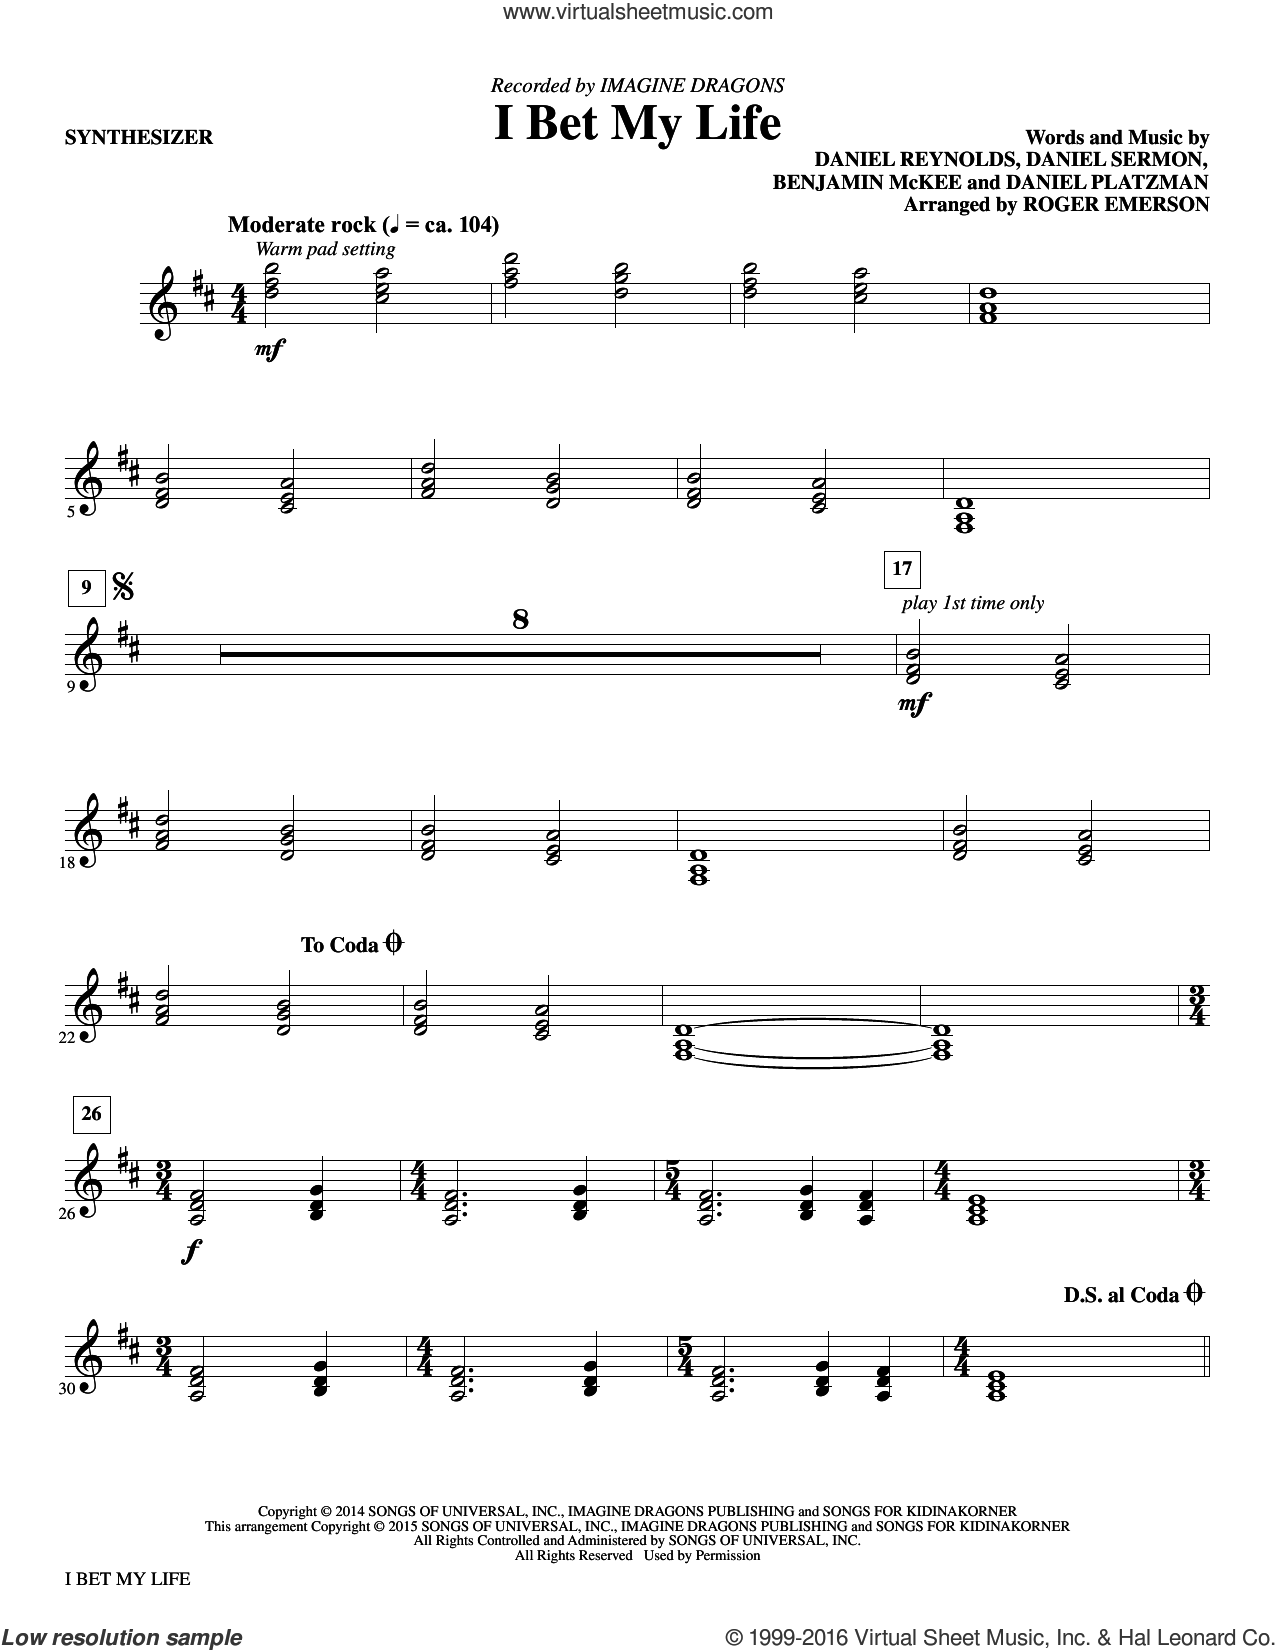 I Bet My Life (COMPLETE) sheet music for orchestra by Daniel Sermon, Daniel Reynolds, Imagine Dragons and Roger Emerson. Score Image Preview.